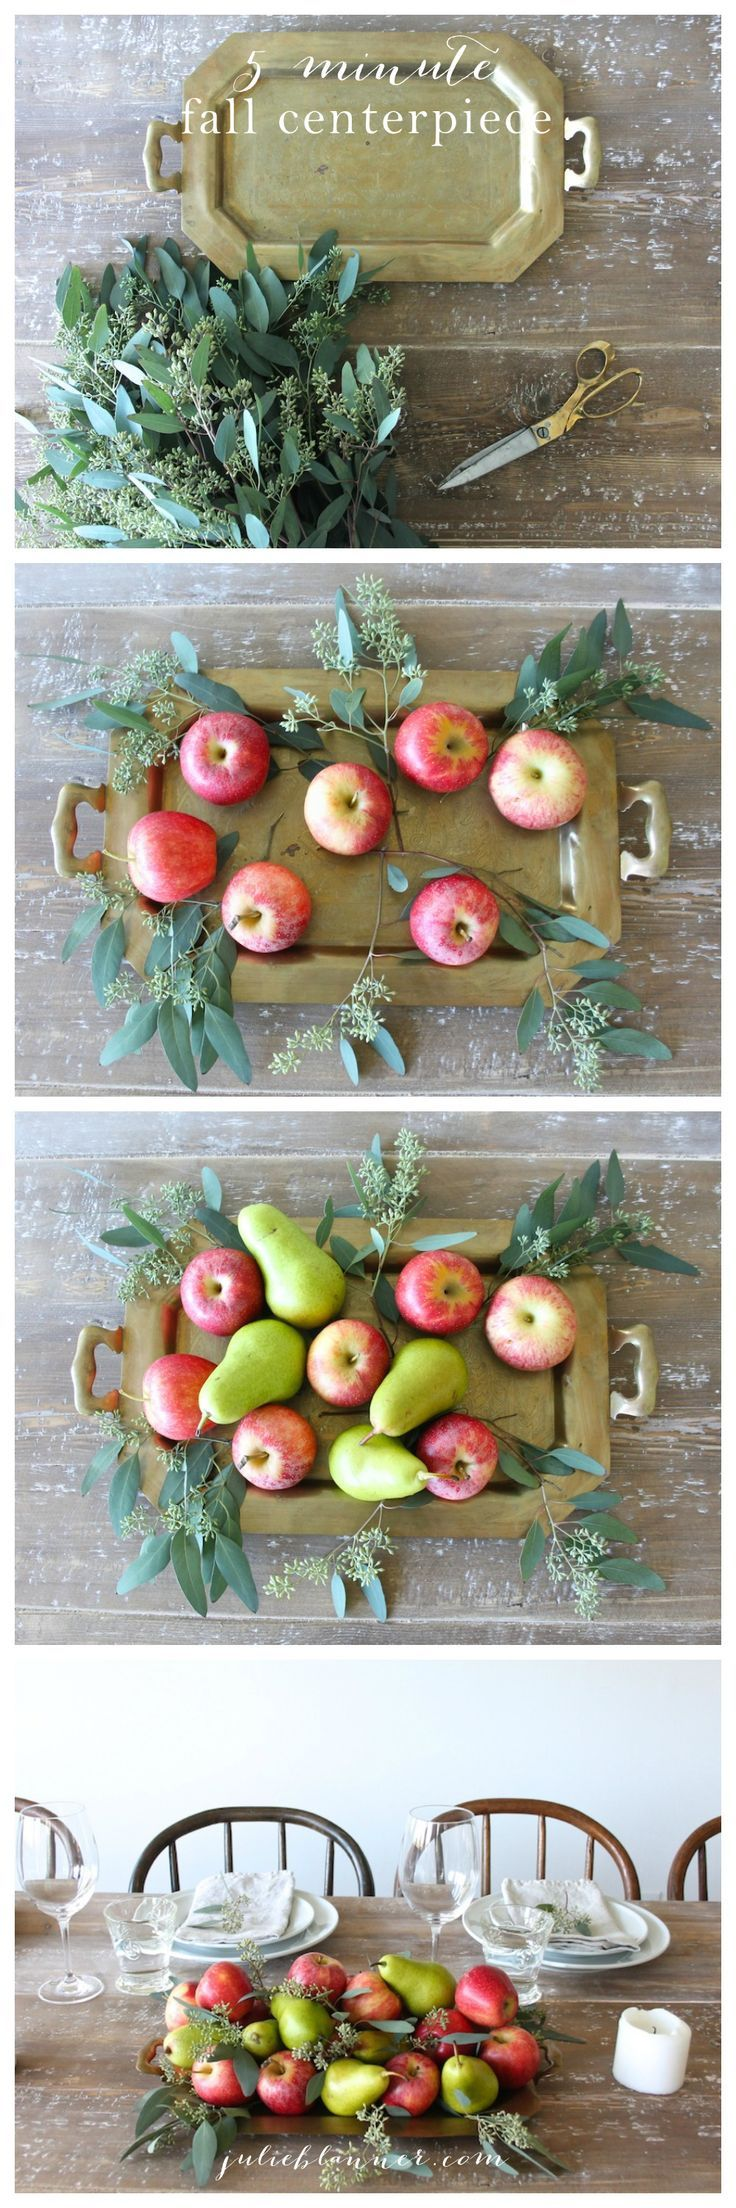 A 5 minute fall centerpiece tutorial - a colorful & edible centerpiece with a long shelf life